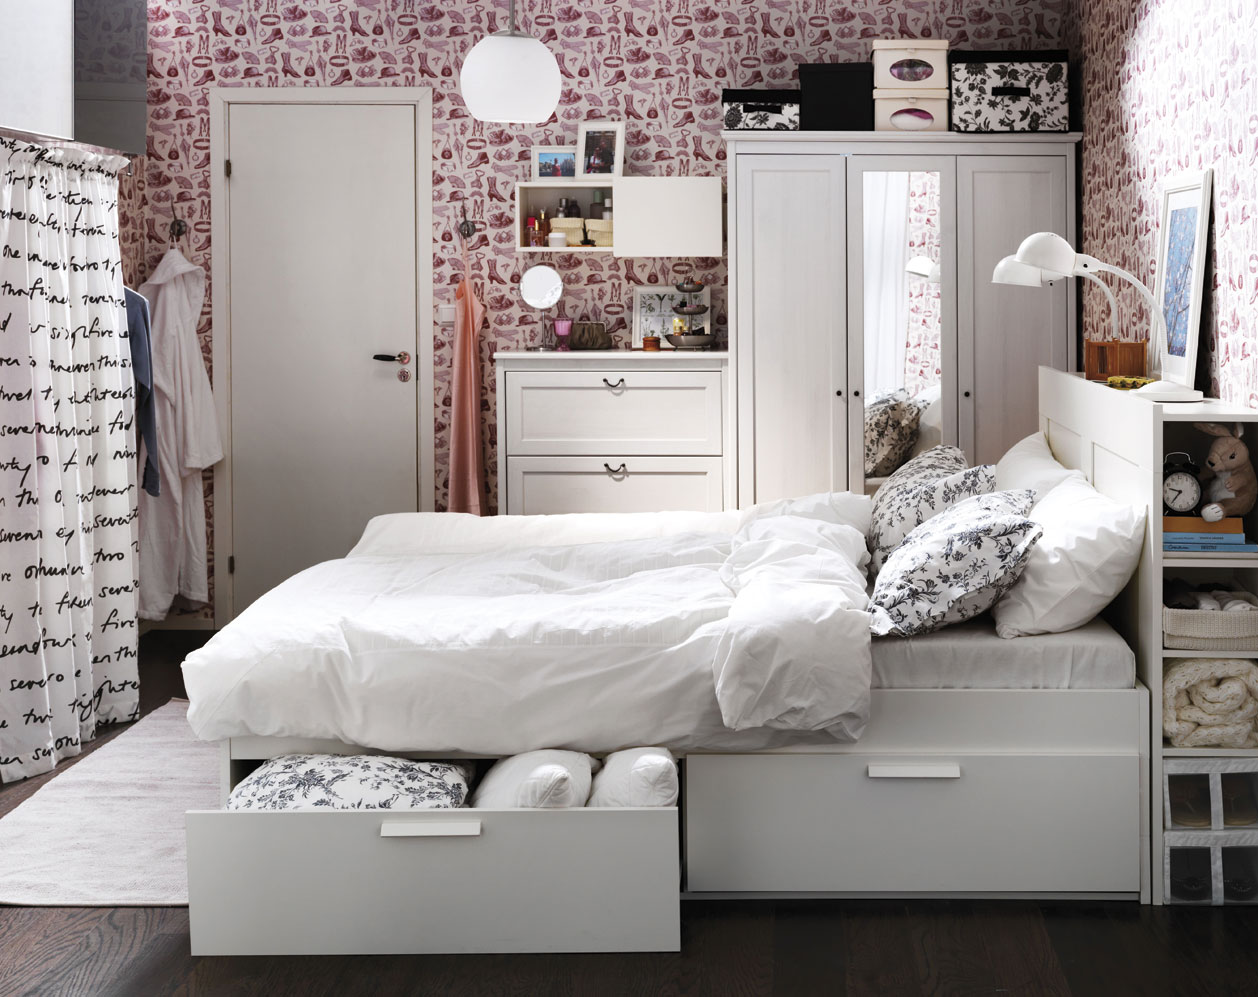 dormitorios ikea 2013. Black Bedroom Furniture Sets. Home Design Ideas